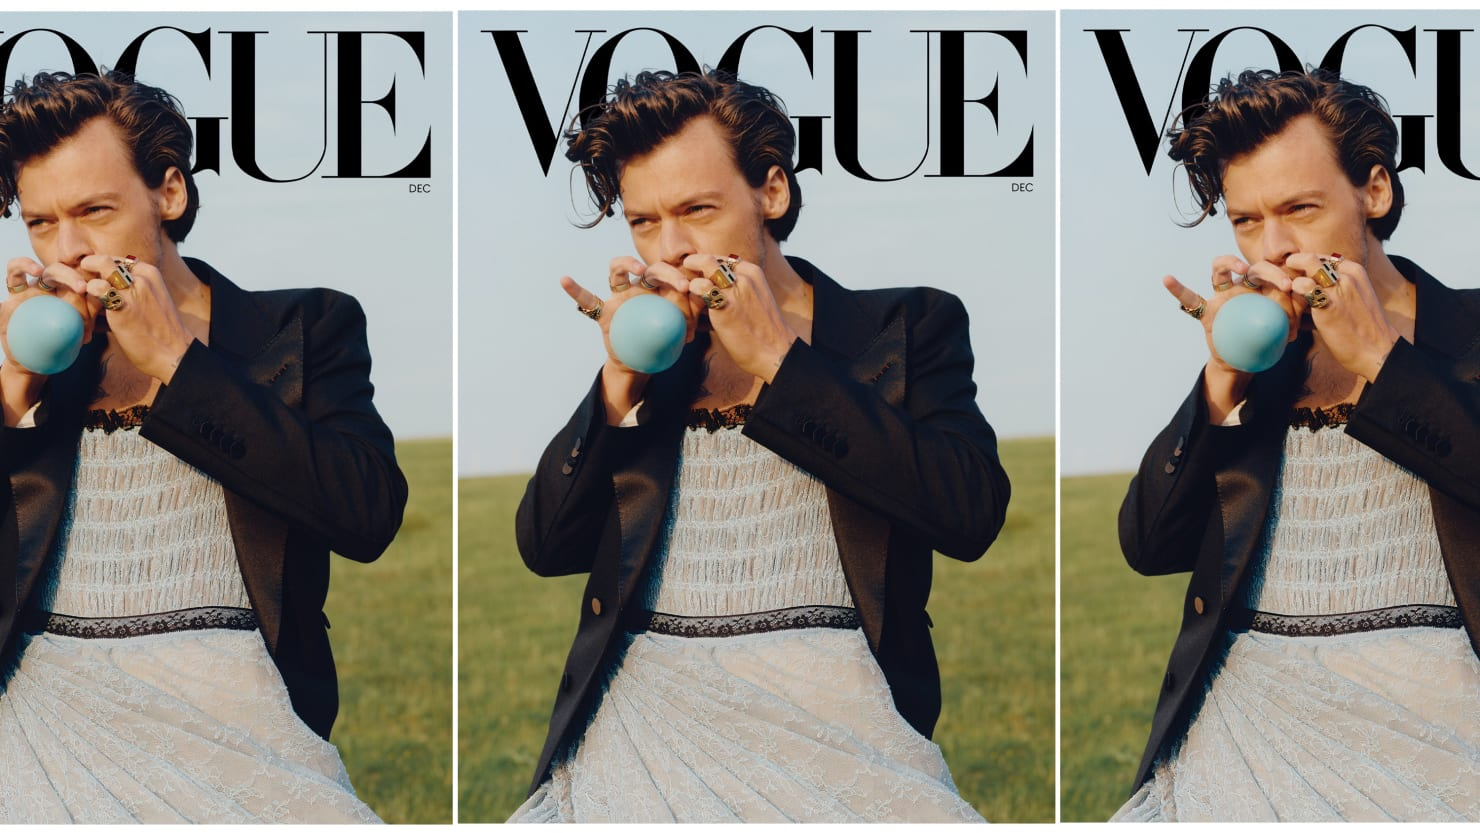 Harry Styles' 'Vogue' Cover May Be Historic, But It Isn't Radical